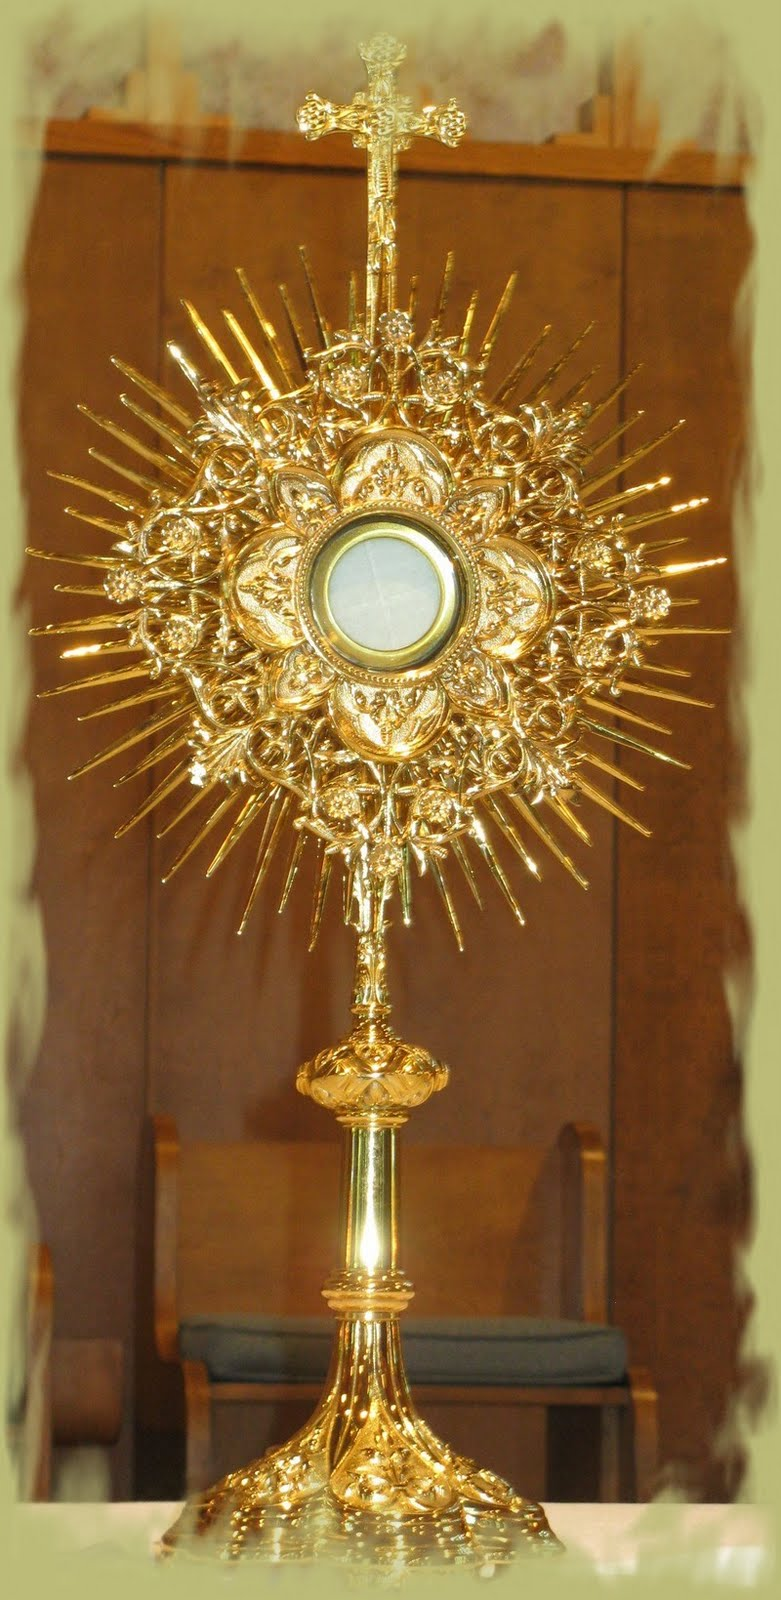 essay about holy eucharist From the opening paragraphs of the second vatican council, one discovers a renewed emphasis upon the holy eucharist as the central focus in the church's prayer life.